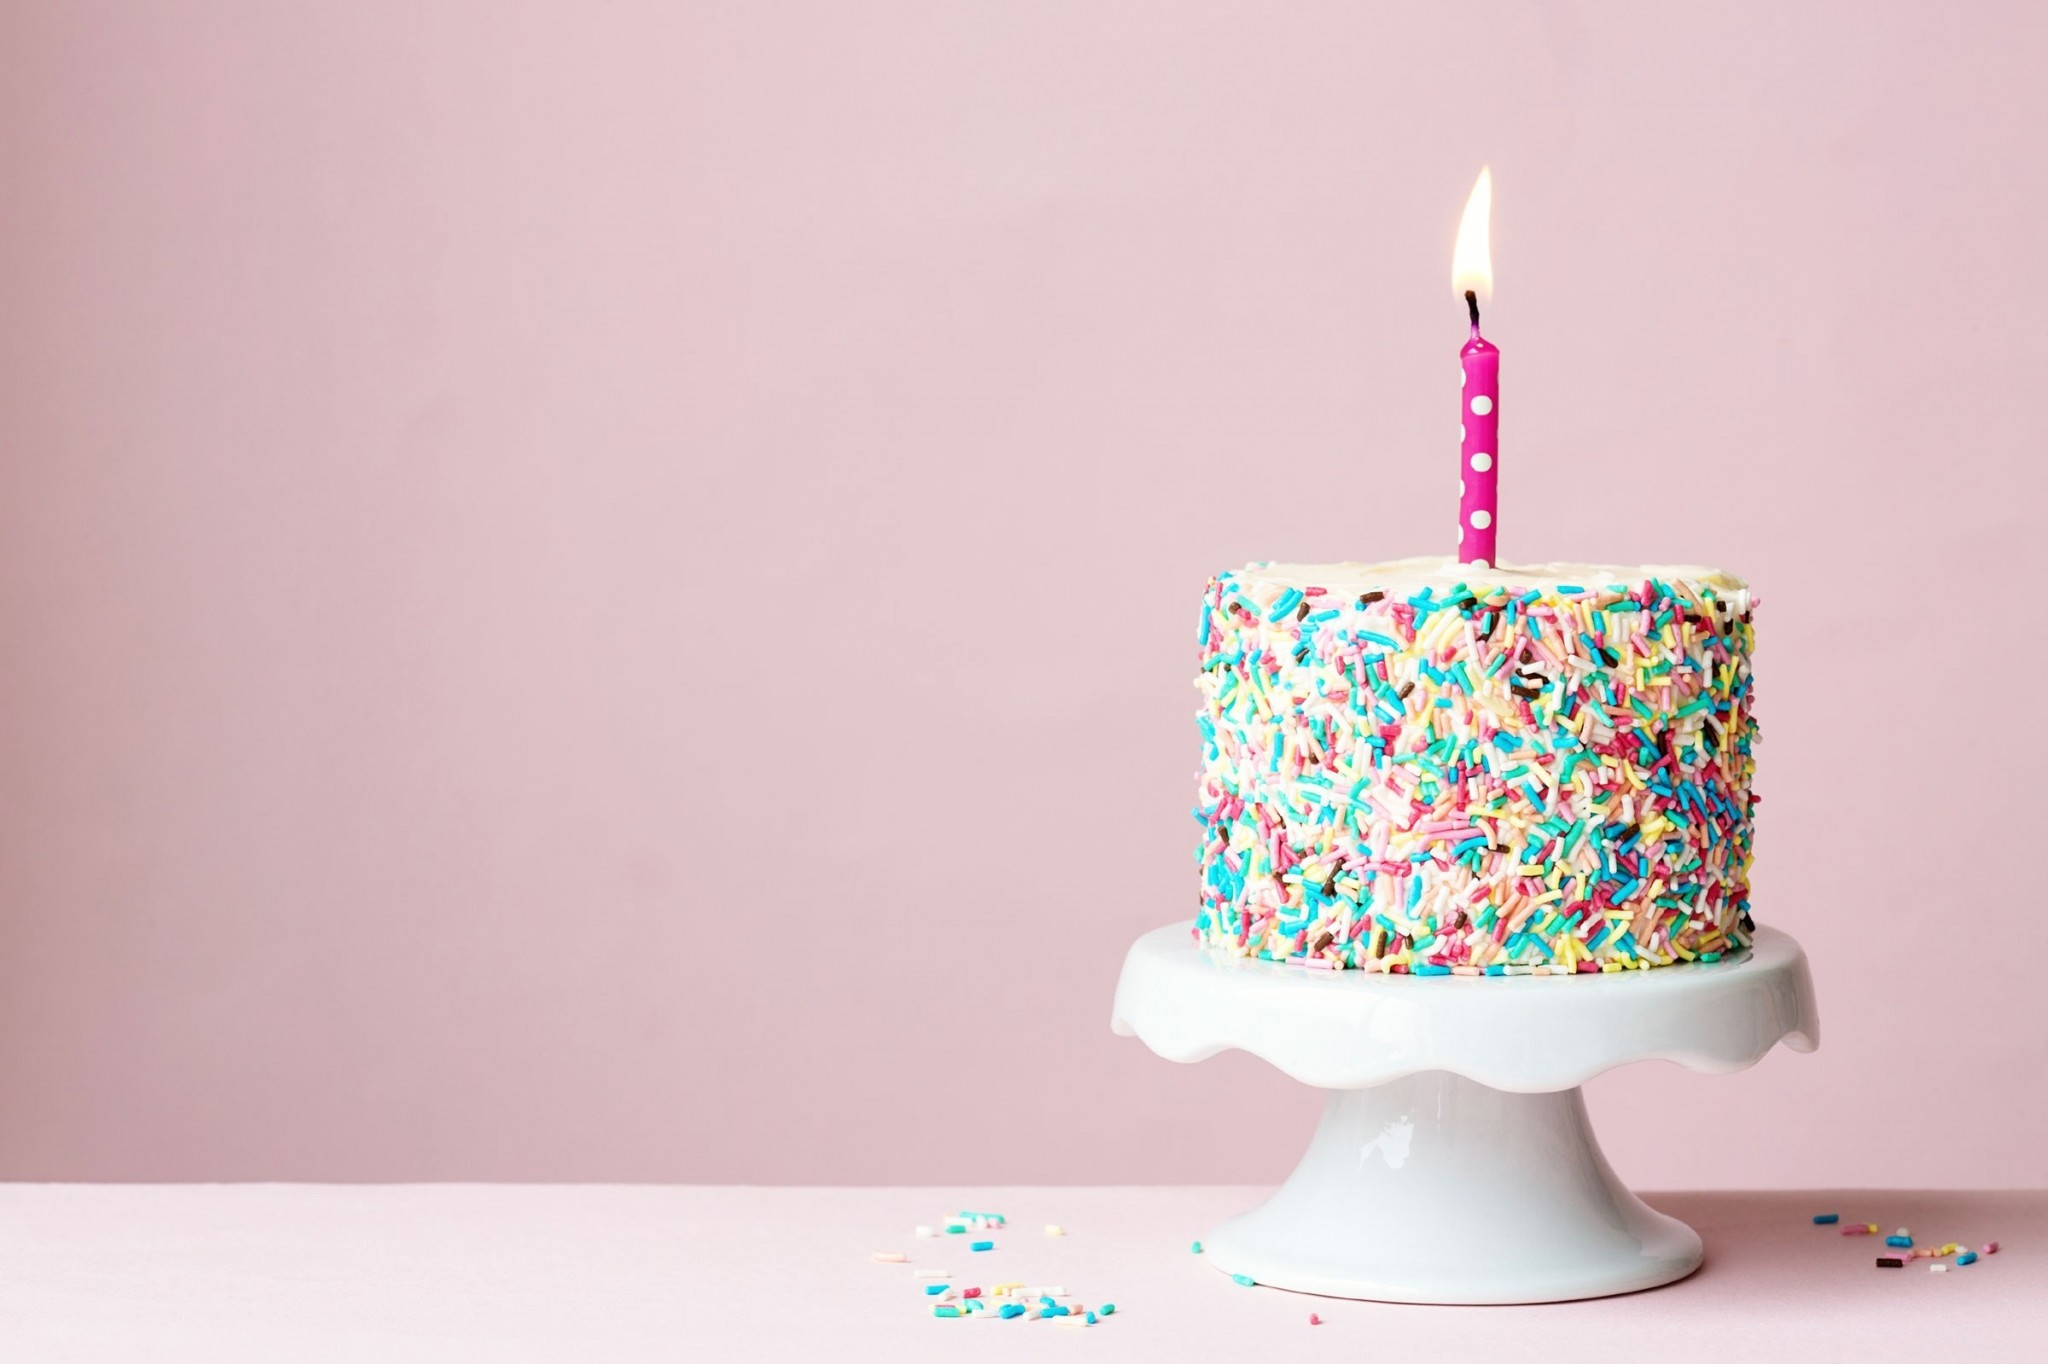 Cute Cupcake Wallpaper Happy Birthday Wallpapers 59 Images